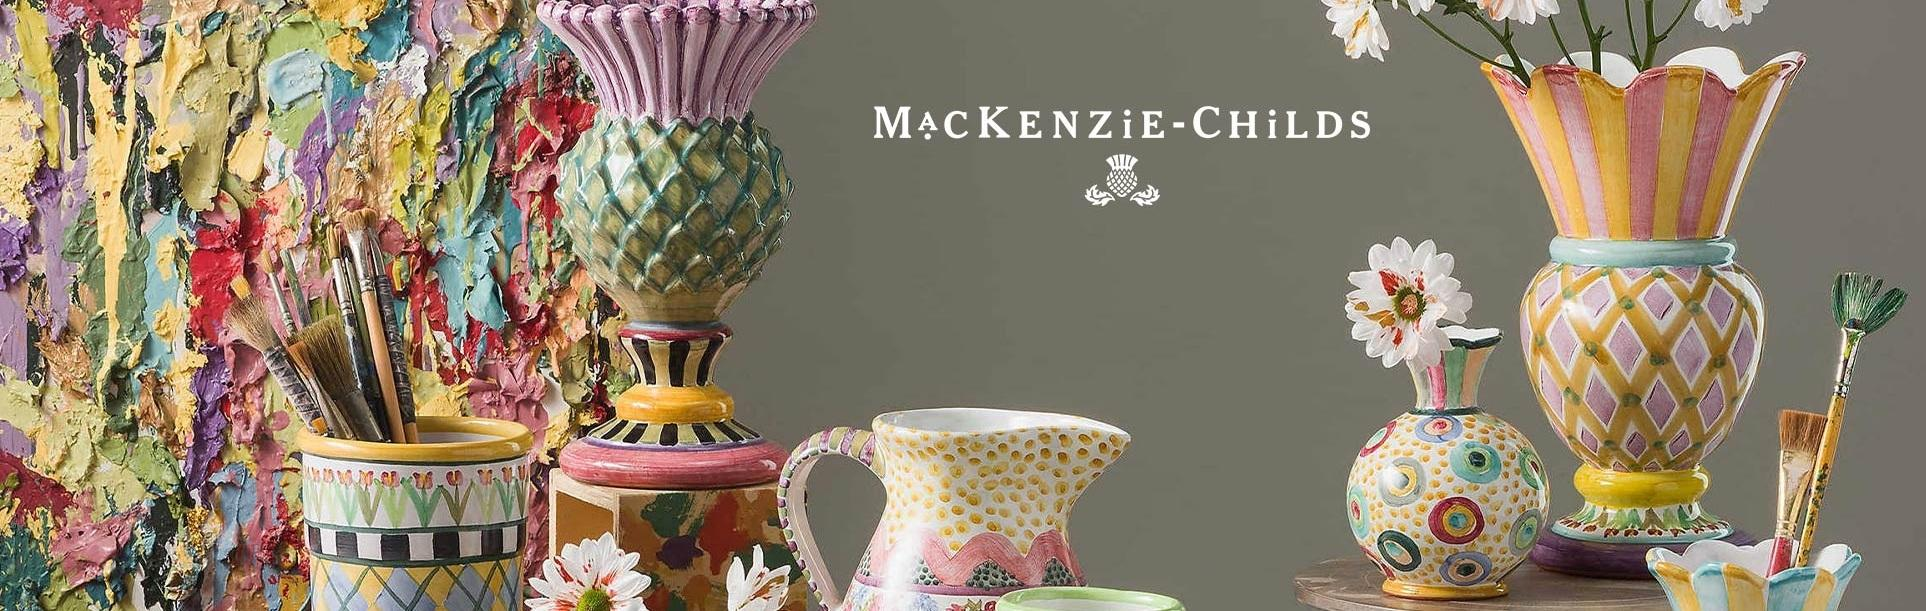 MacKenzie-Childs lifestyle products slide 5